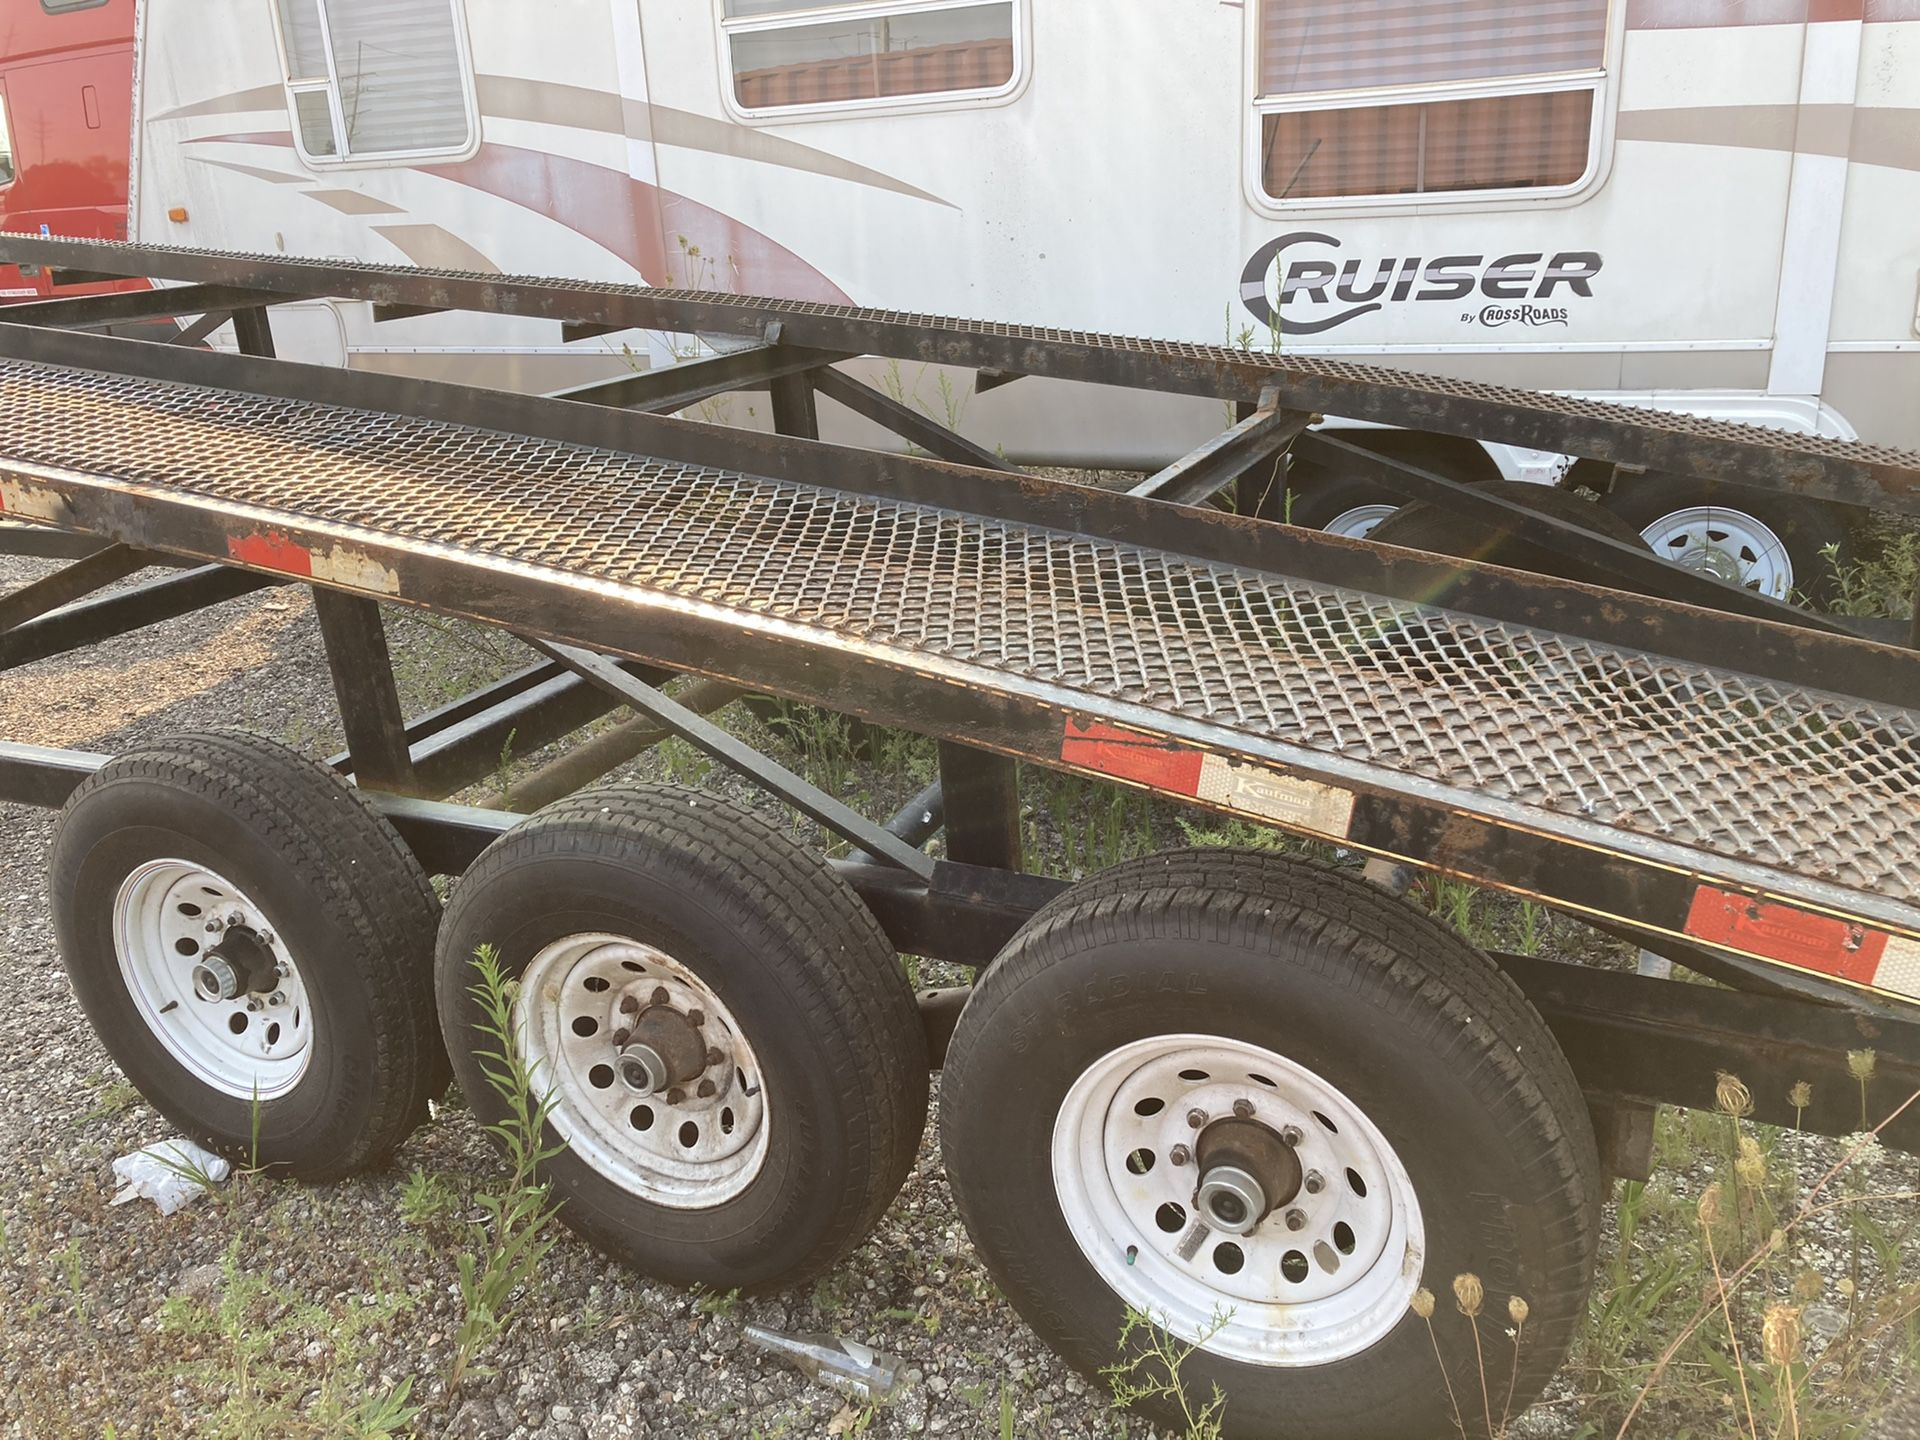 2016 Kaufman 3 car hauler trailer, in good condition, no cracks on the frame, new brakes and bearings,new tires. Ready to go on the road.